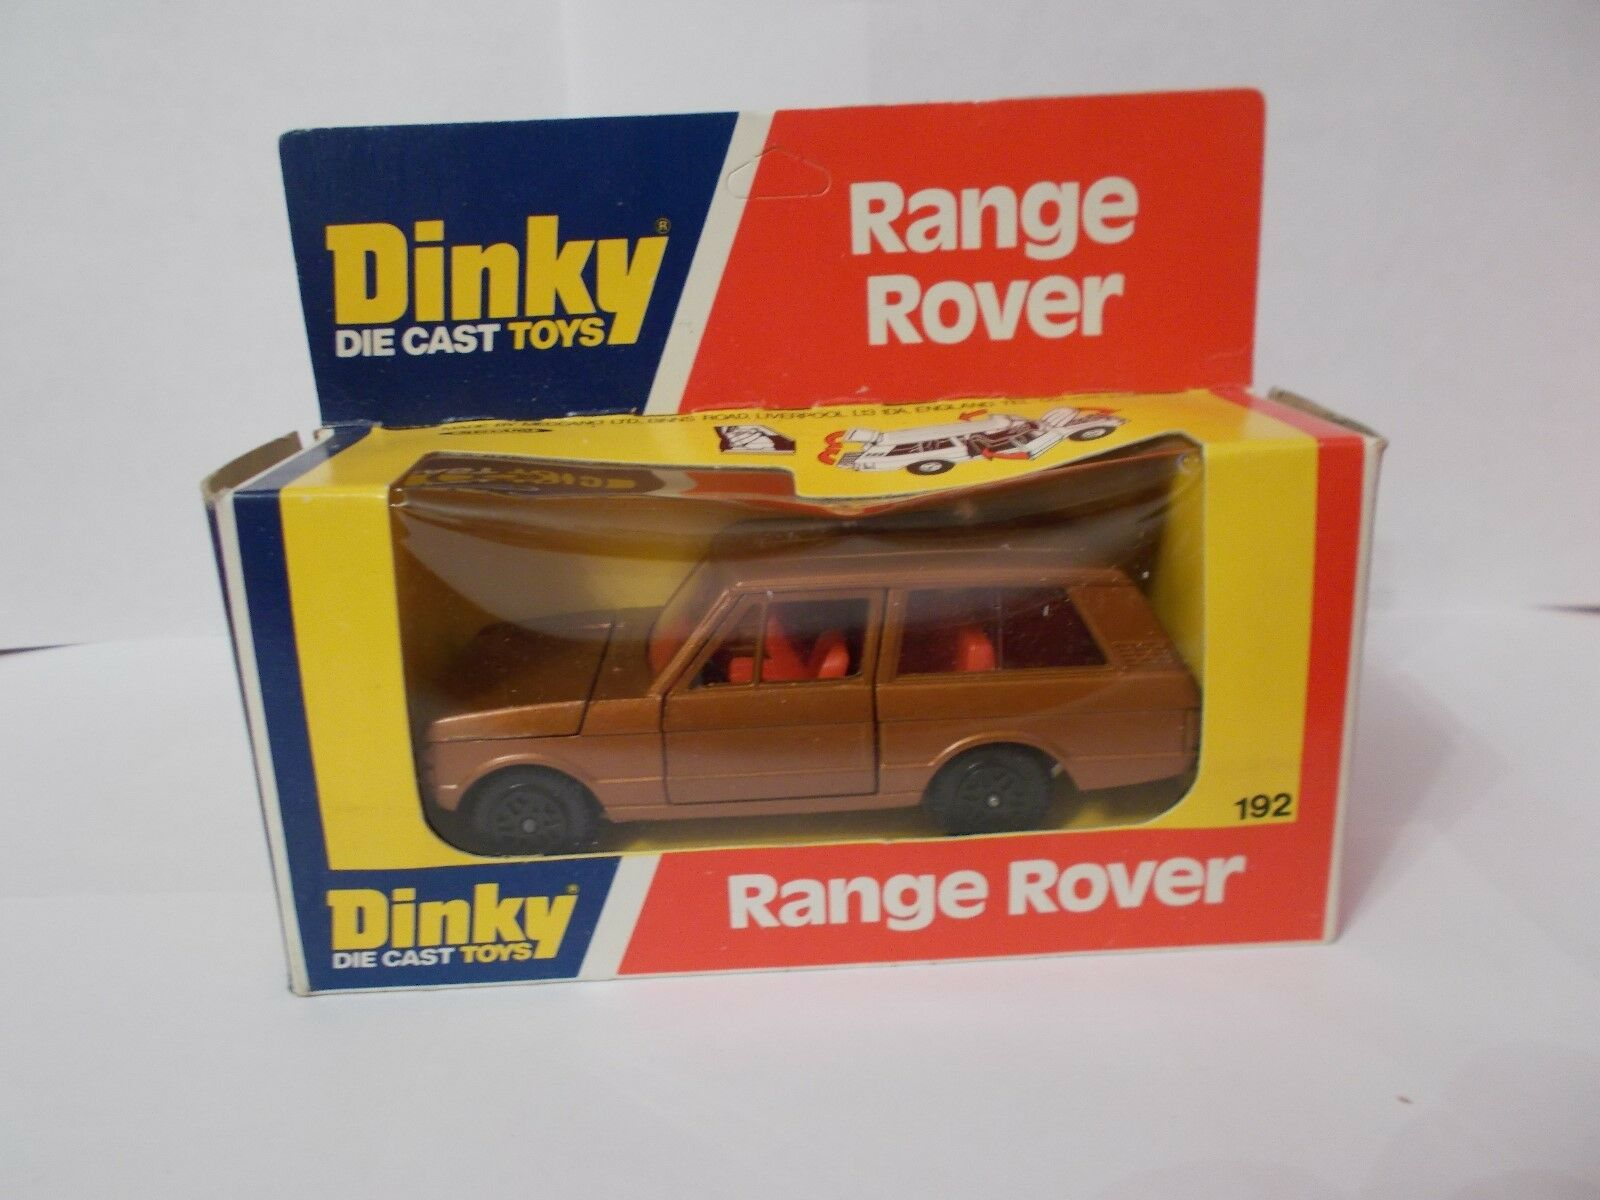 Dinky 192 range rover boxed 1970 vintage